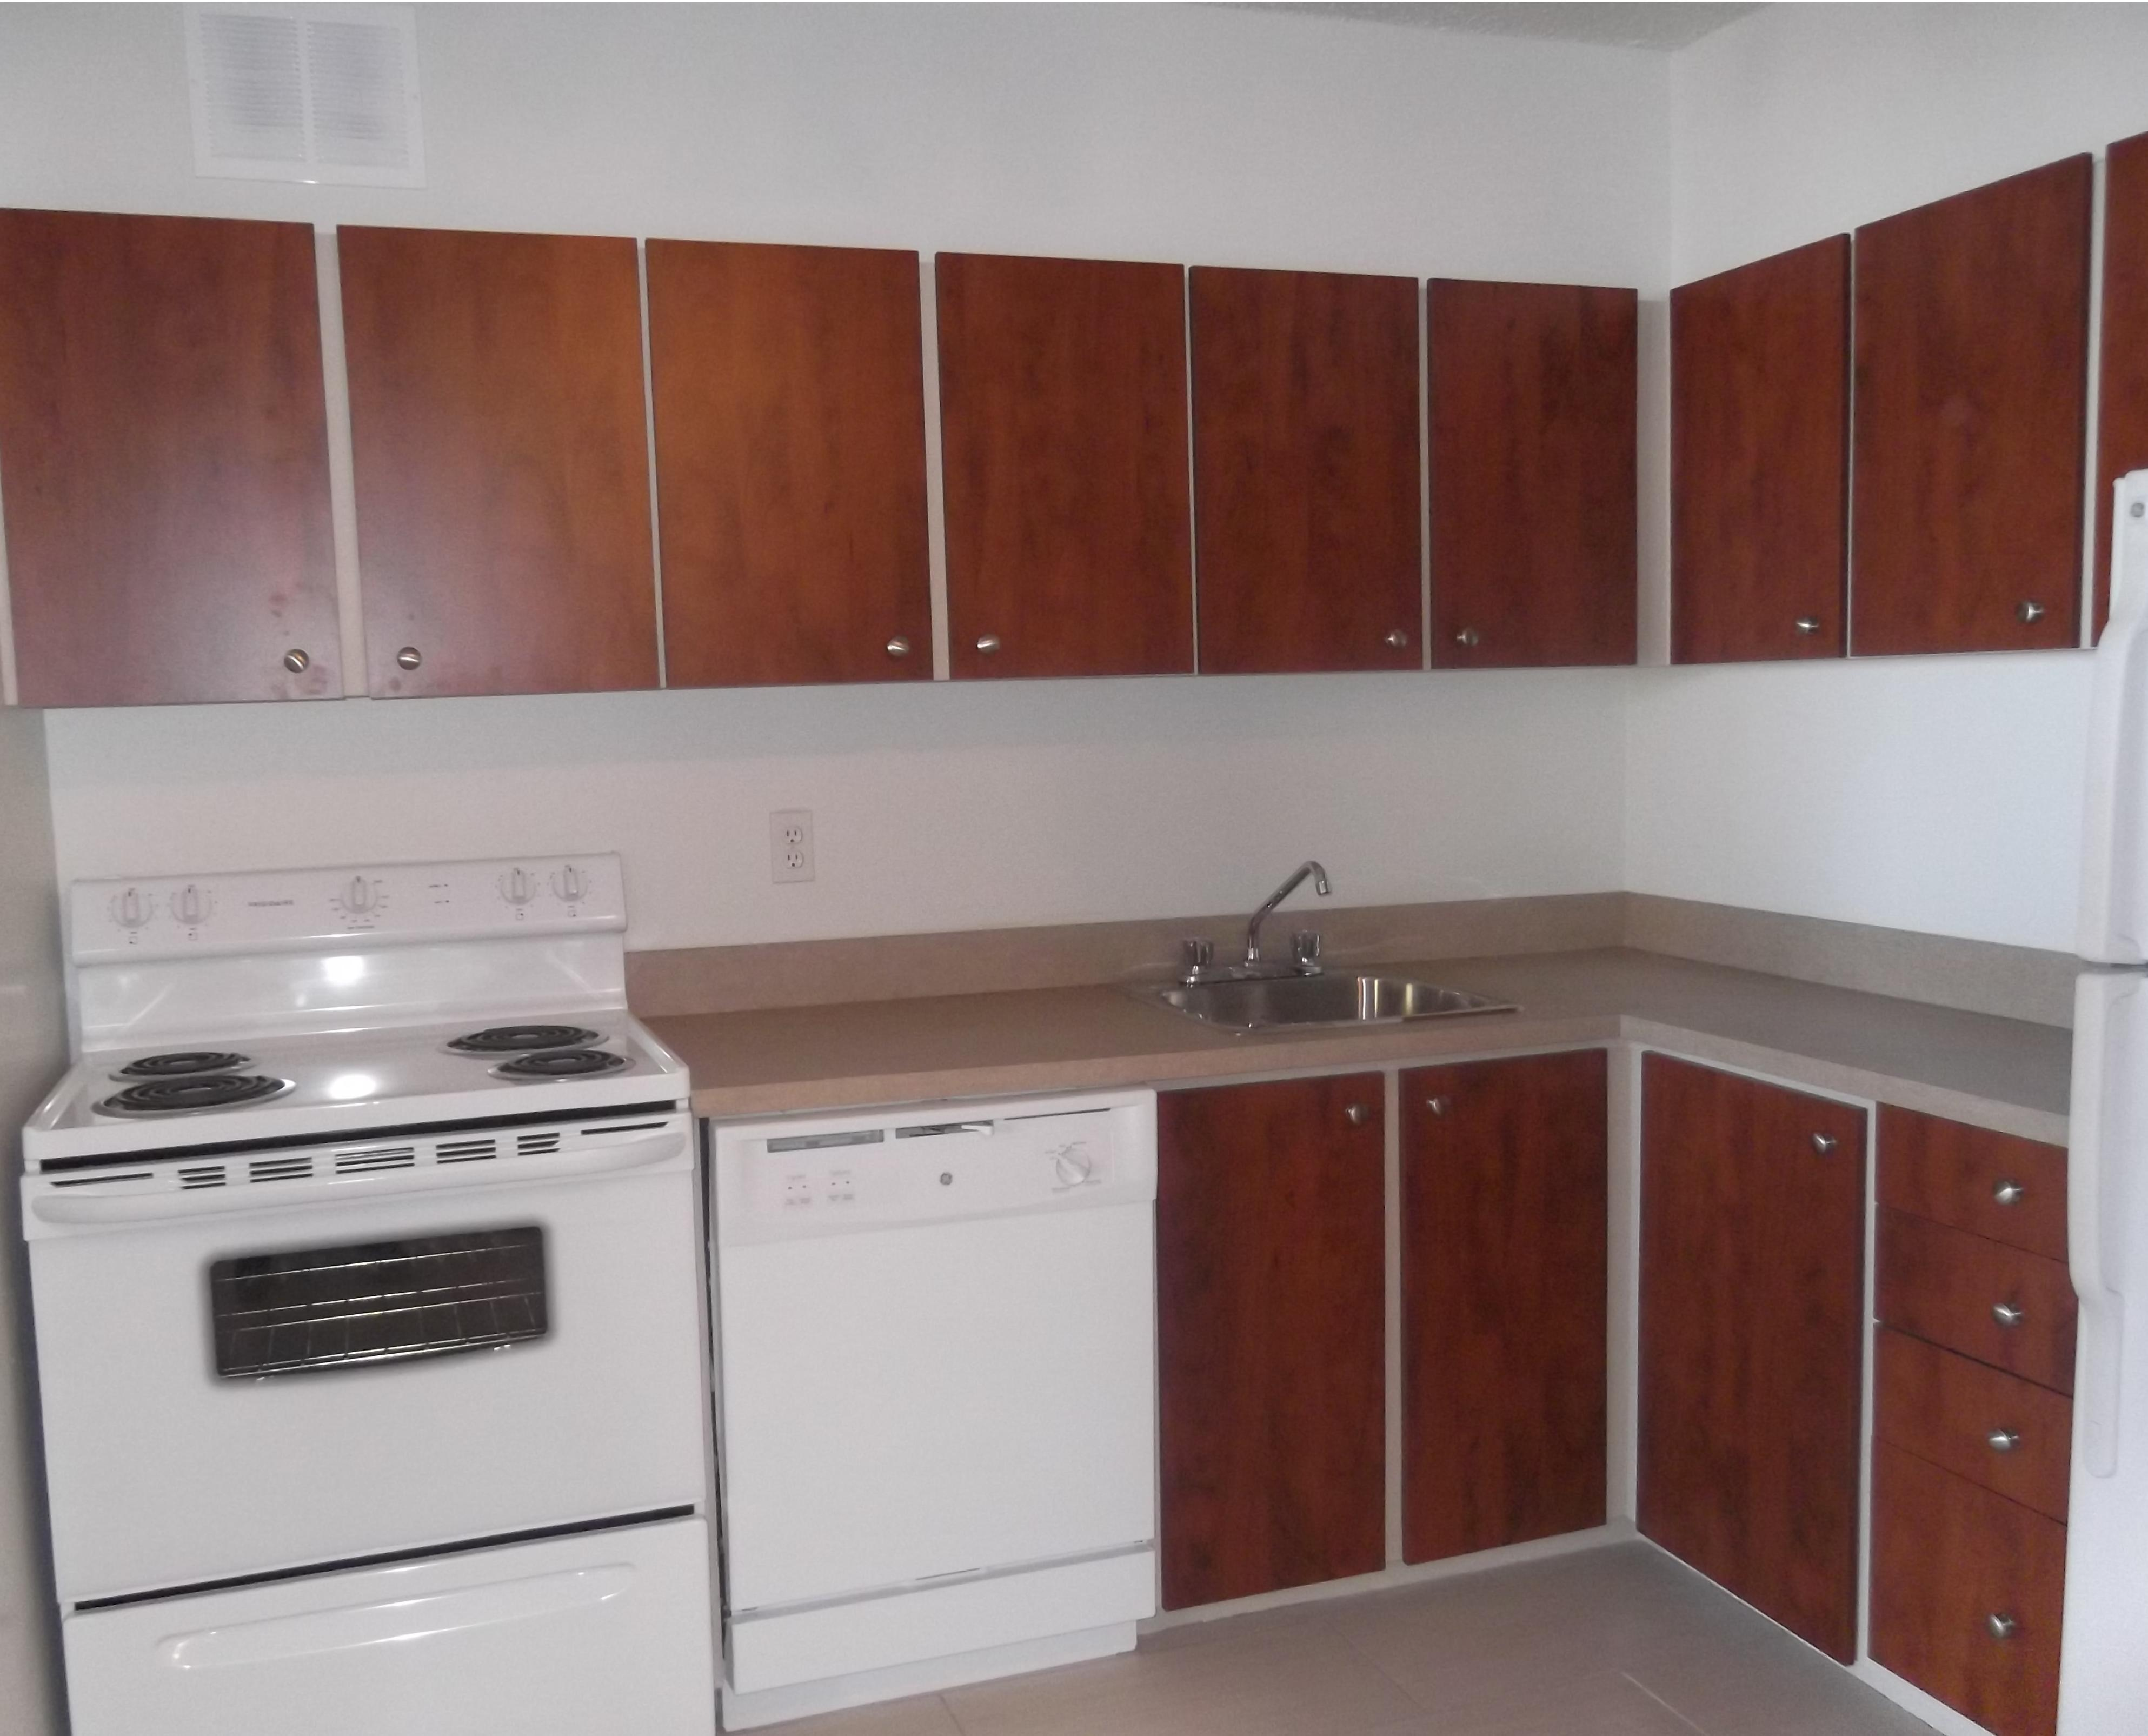 2 bedroom Apartments for rent in Plateau Mont-Royal at Tour Lafontaine - Photo 01 - RentQuebecApartments – L23211